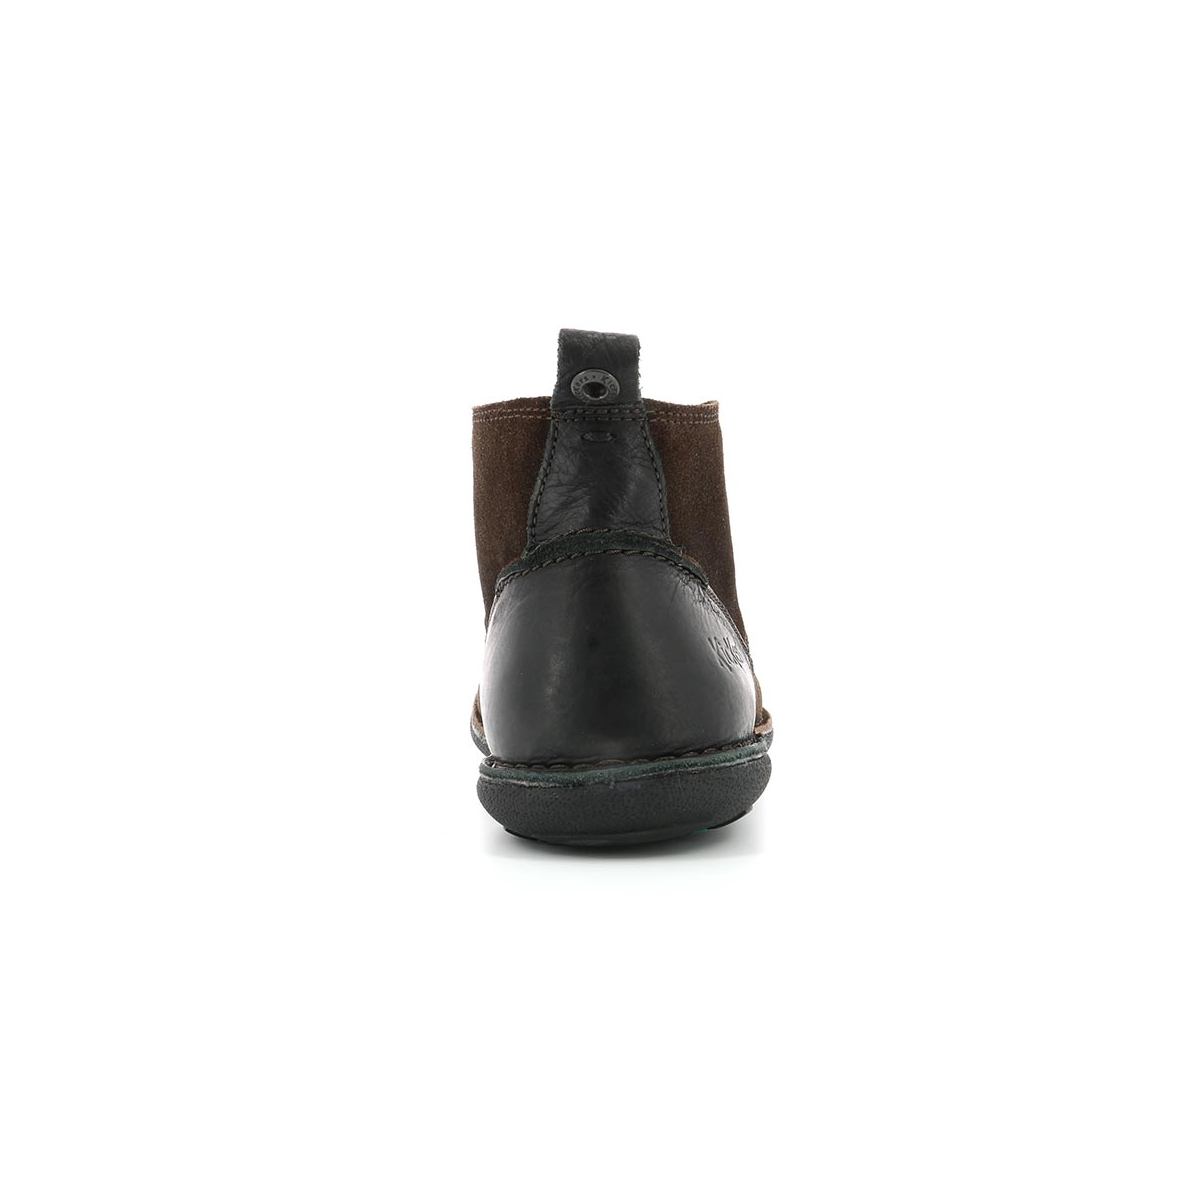 Chaussures Marron Homme Kickers Chaussures Homme Swiratan 8Sdq77w